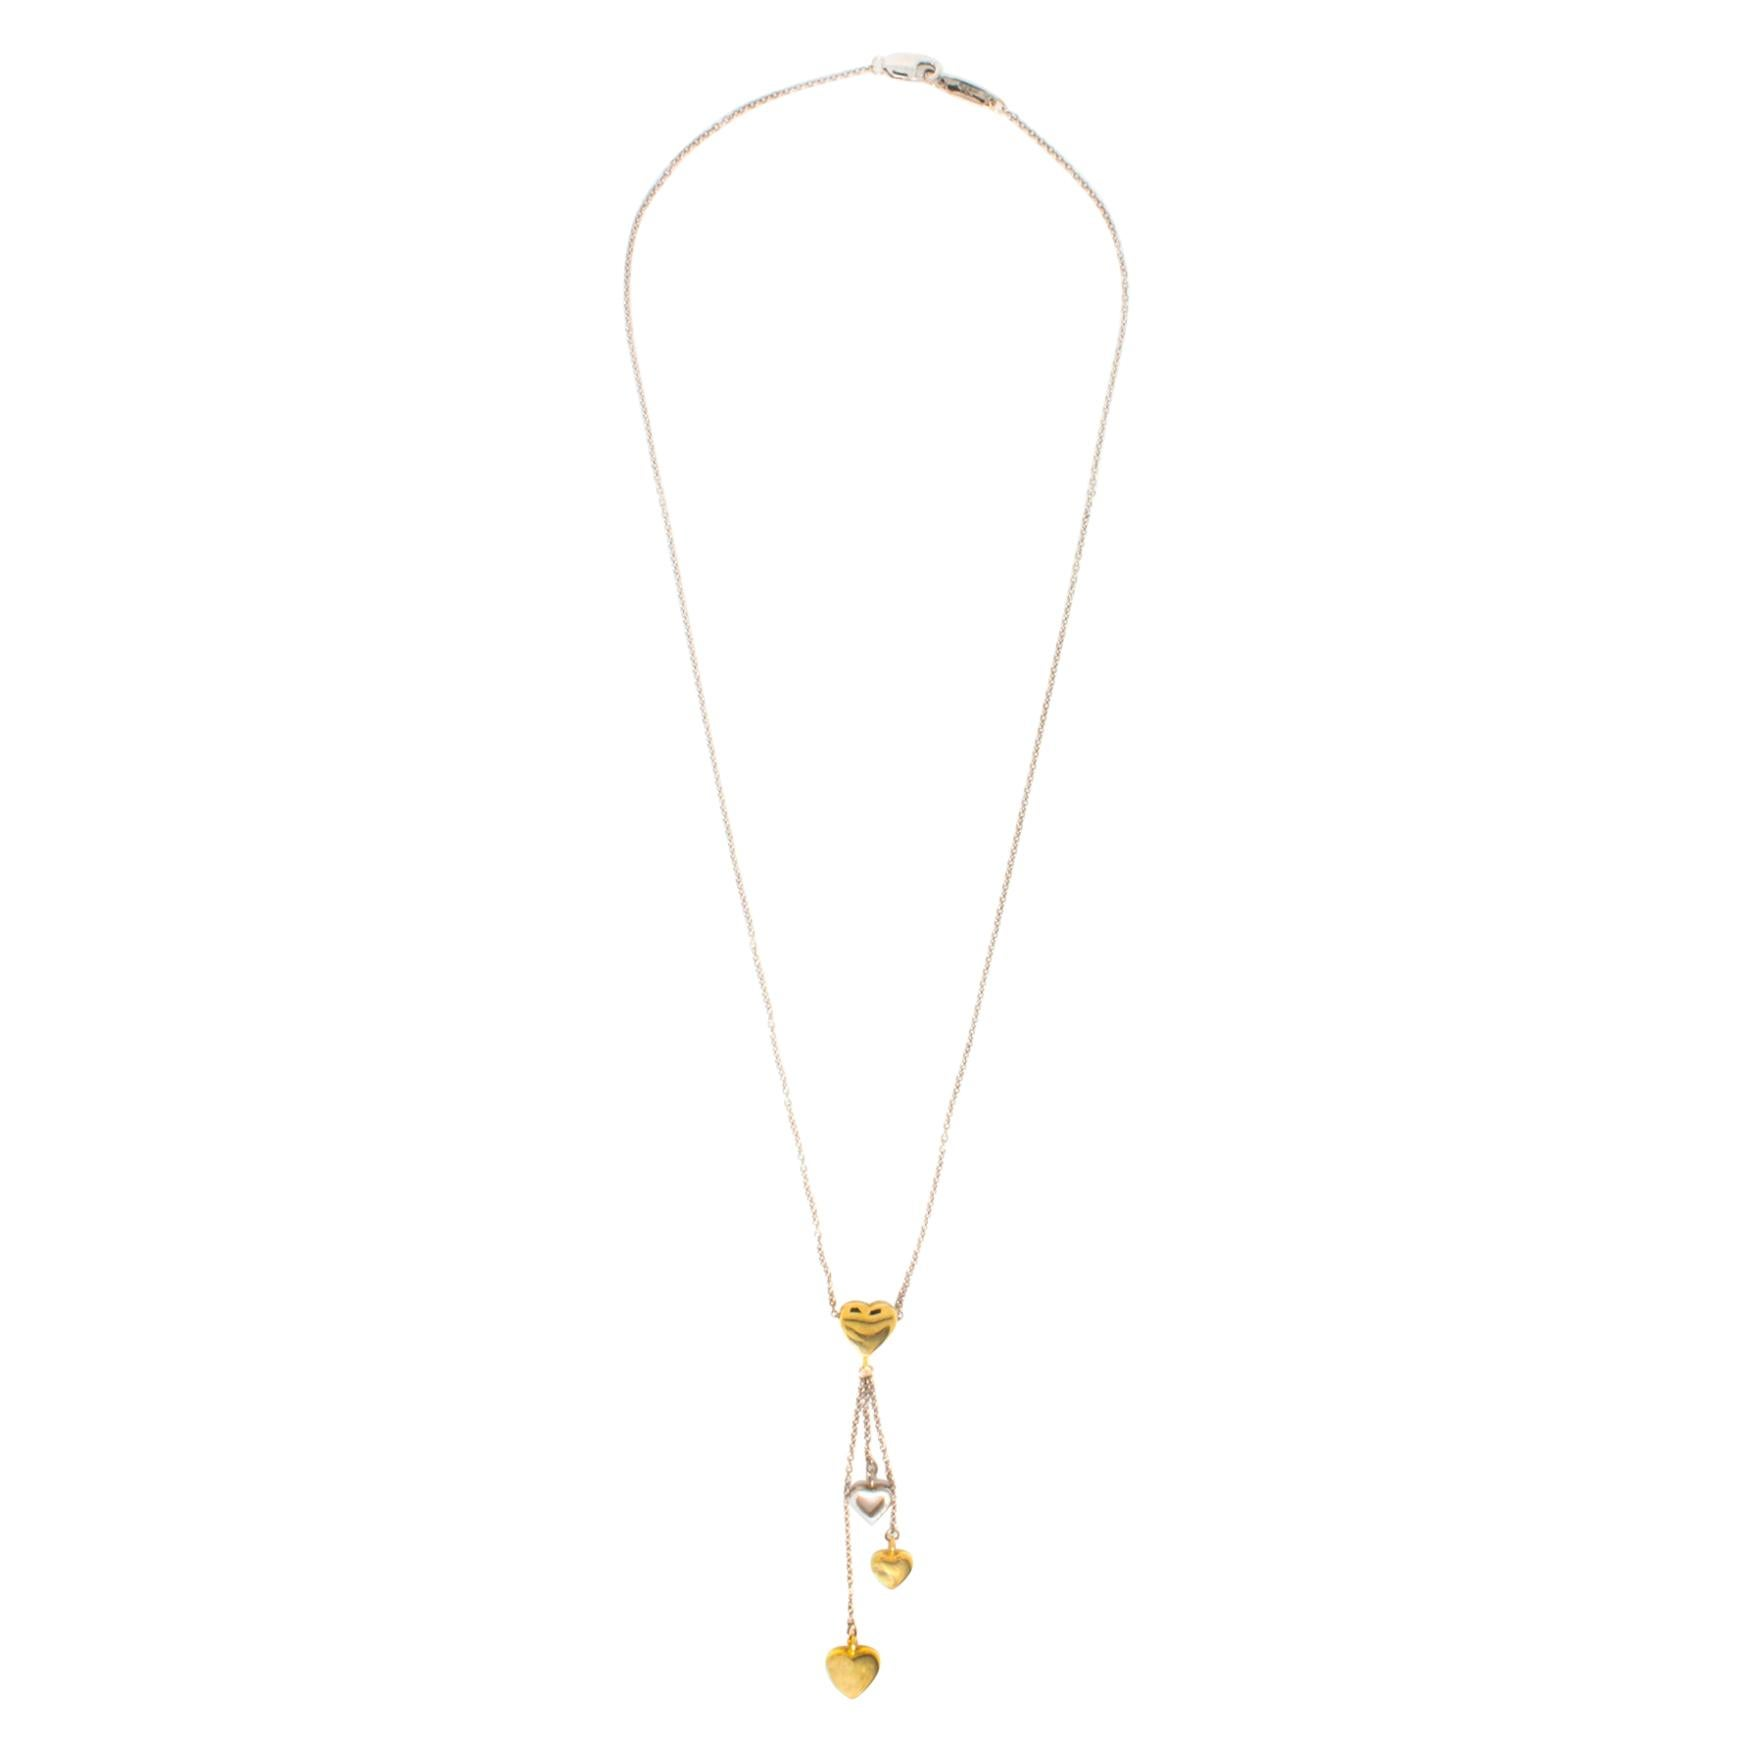 Tiffany & Co. 18kt Yellow and White Gold Ladies Necklace with Heart Charms